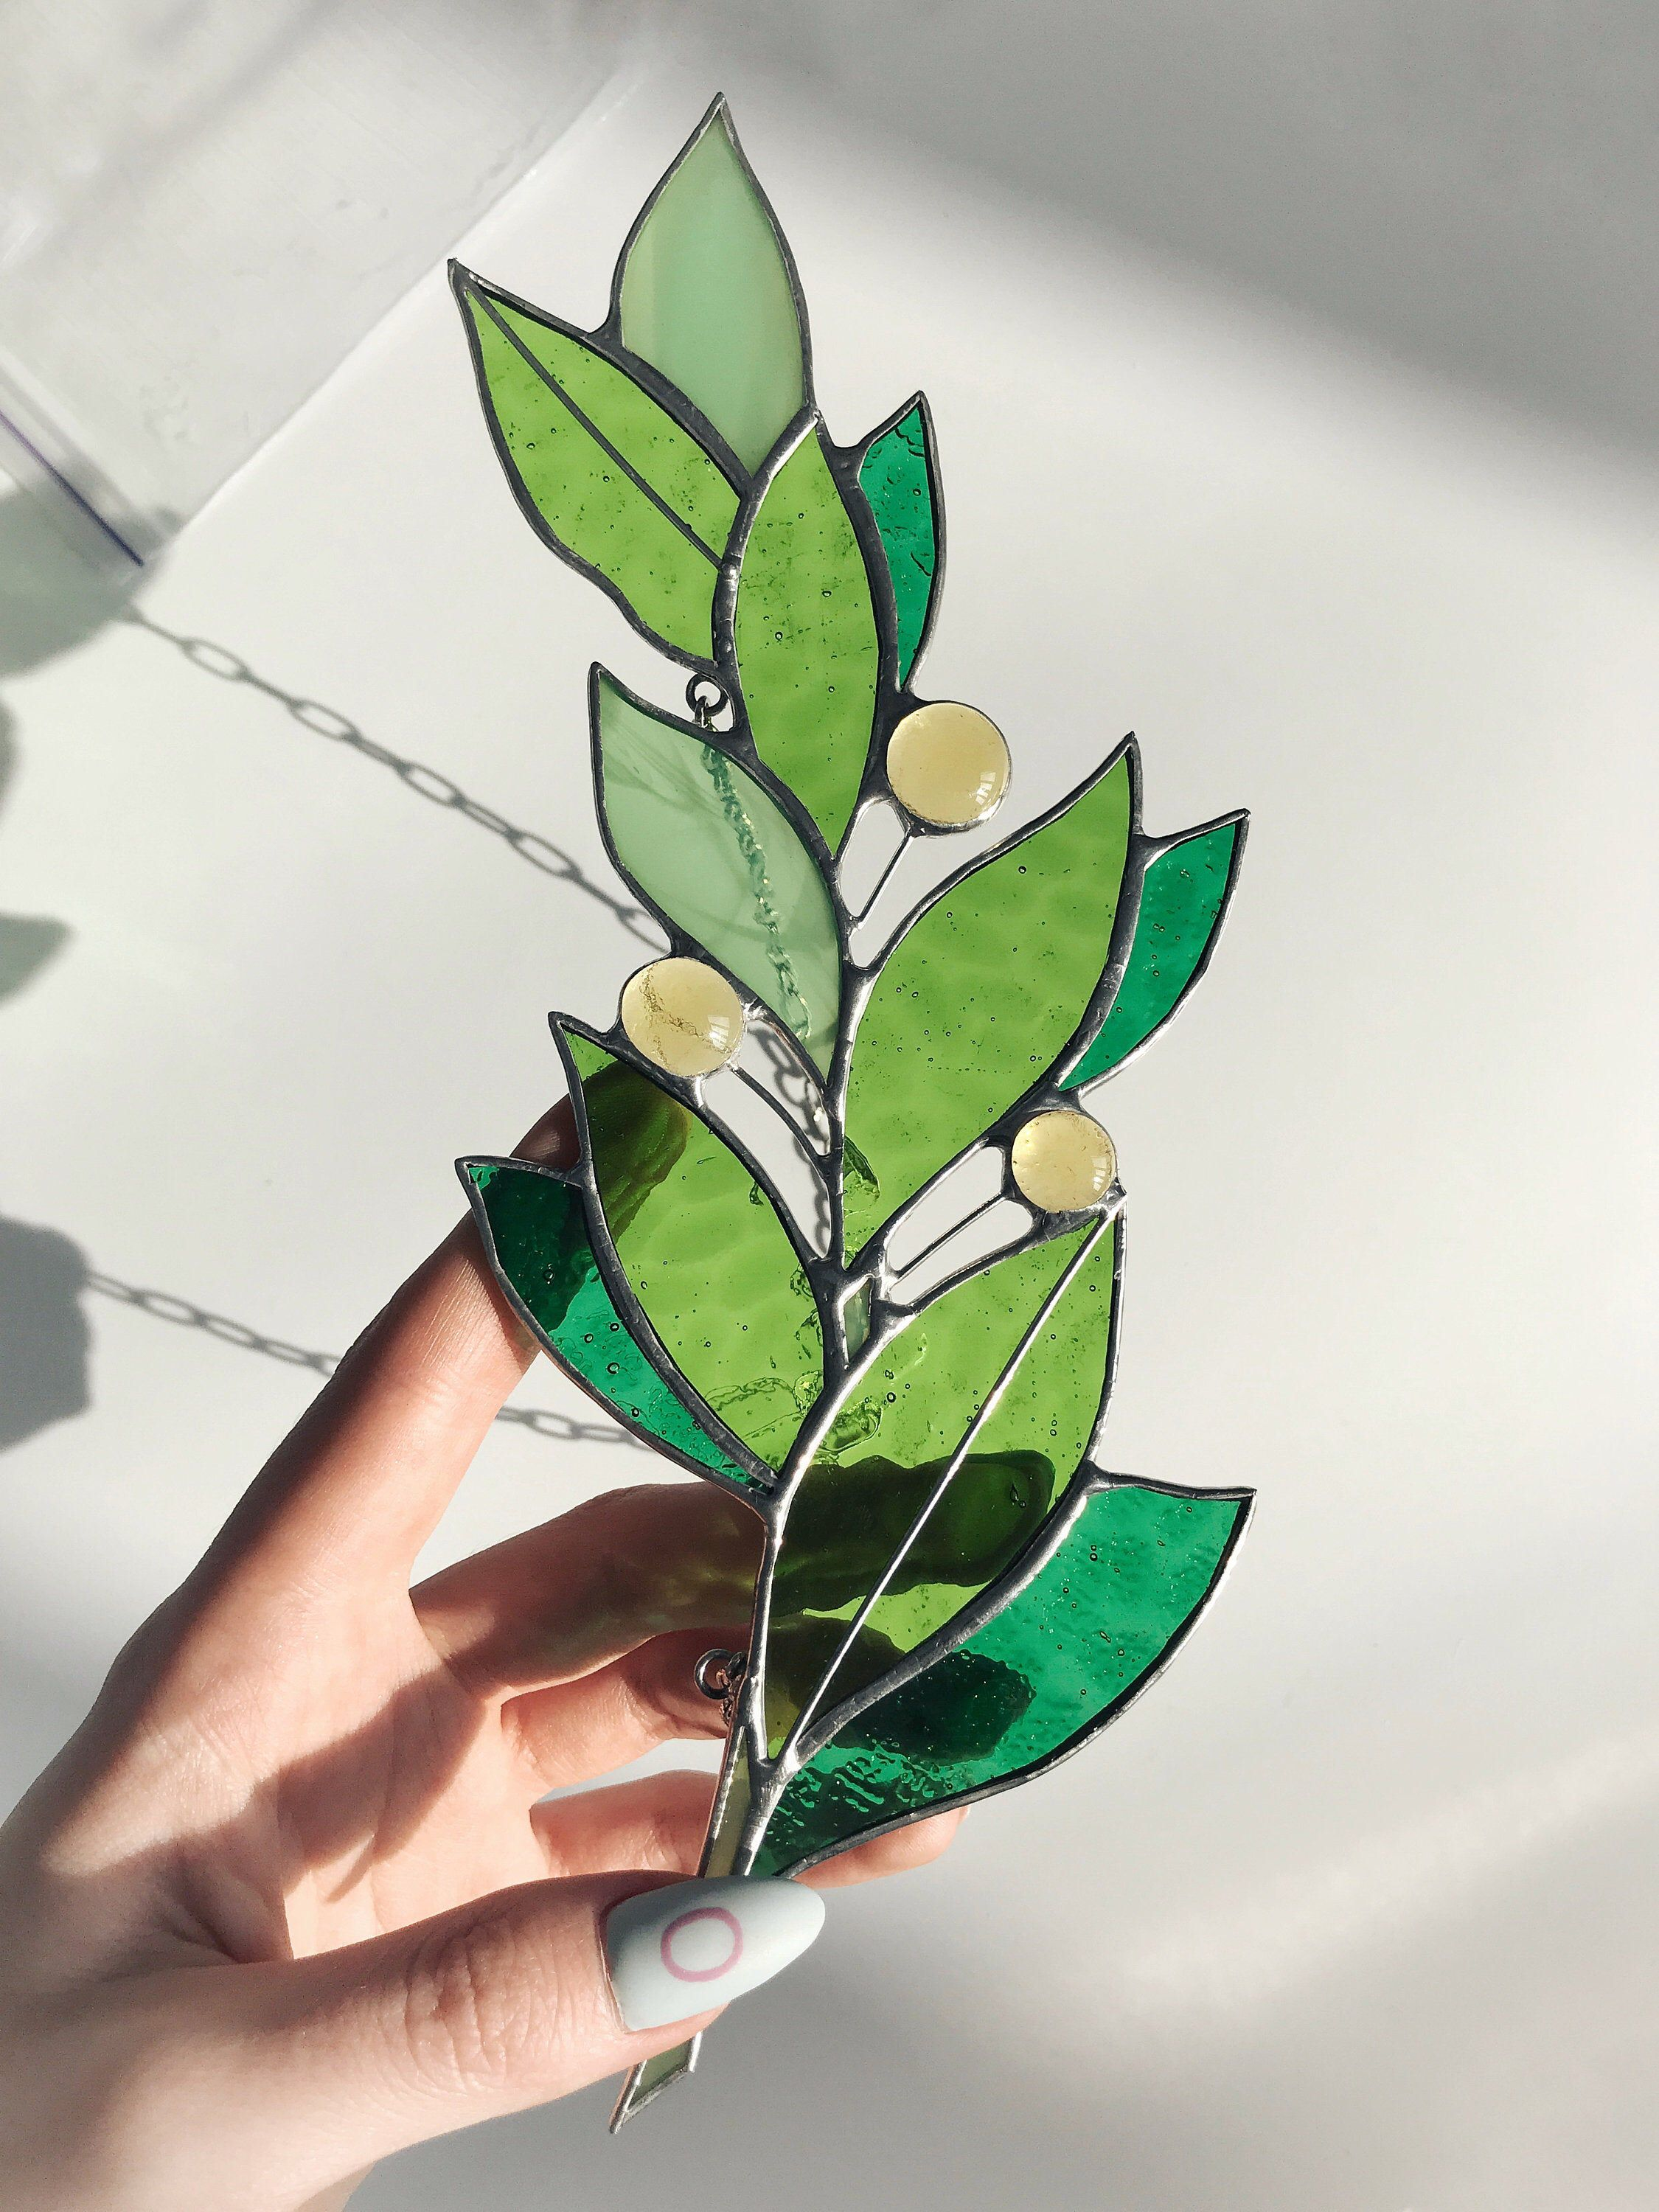 Stain Glass Green Laurel Branch Tiffany Suncatcher Leaf Thanksgiving Day Gift Home Decor Art Window Wall Nature Ornament Decorations Hanging -   beauty Art stained glass